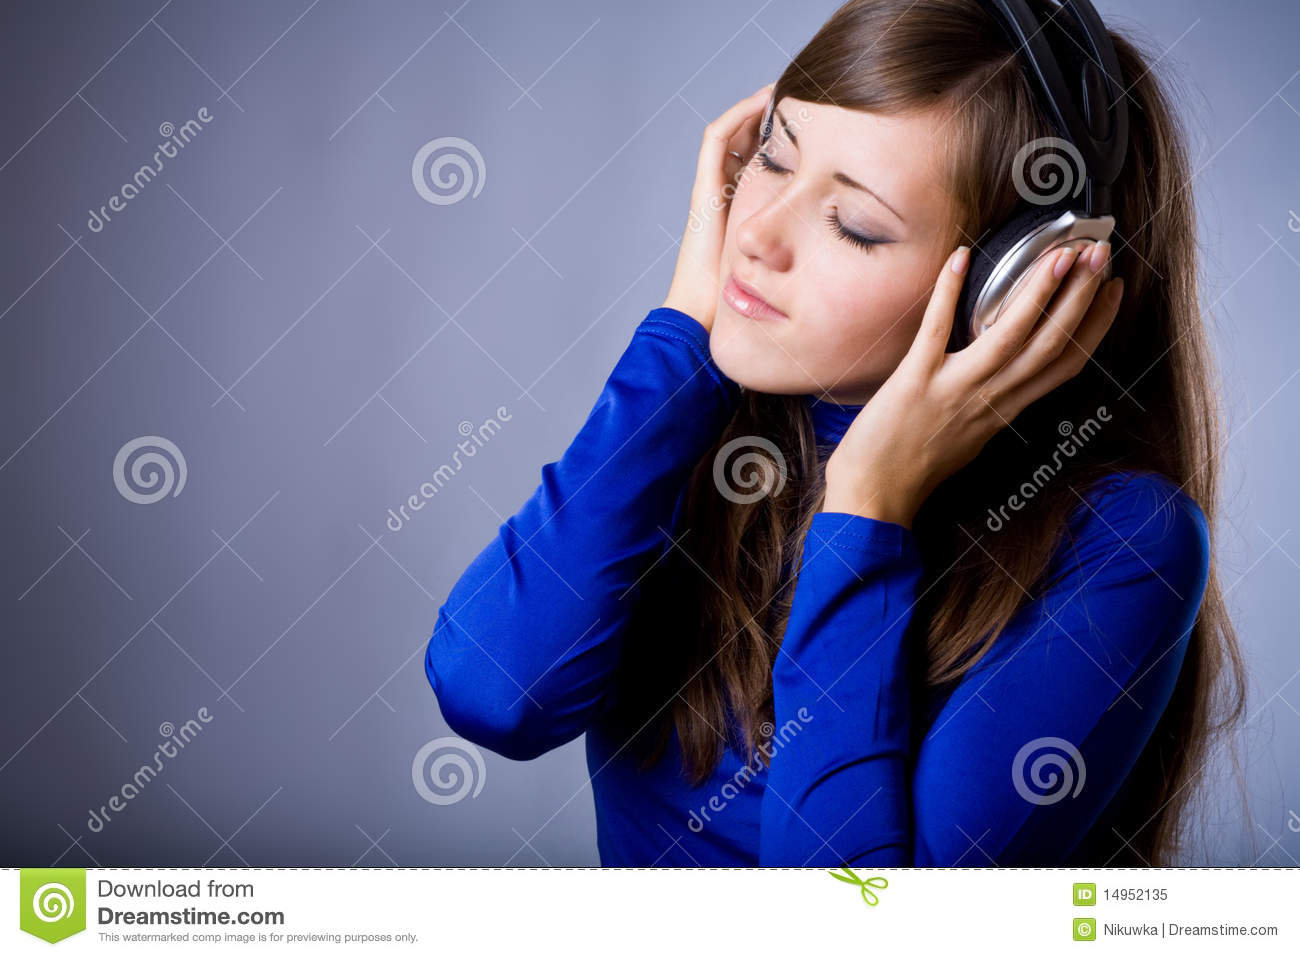 Beautiful Headphones Beautiful Headphones Girl Royalty Free Stock Photo Image